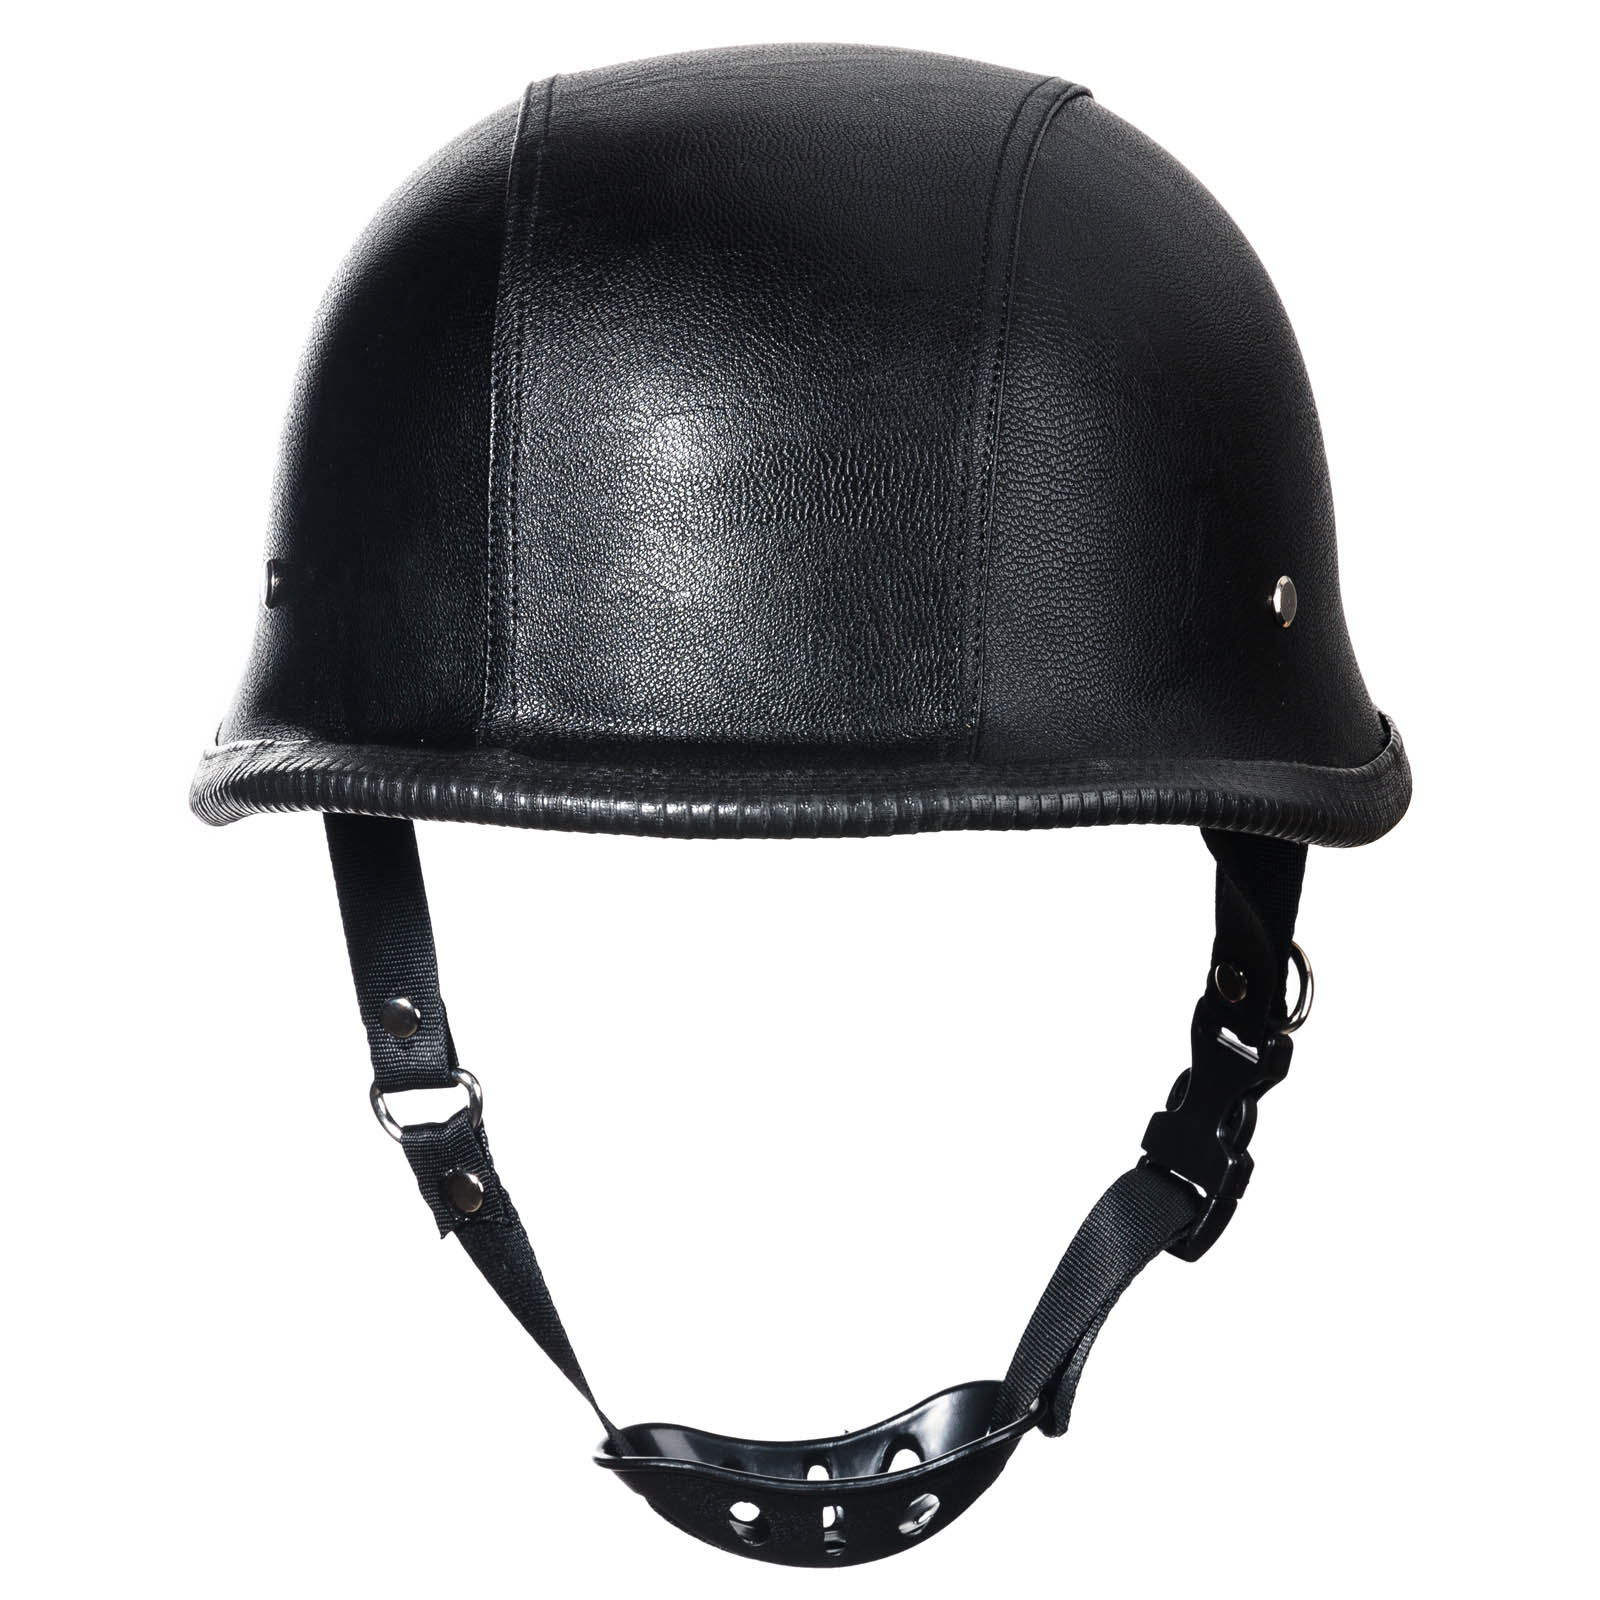 2016 new wwii german style dot motorcycle helmet black vintage half face motorcycle helmet for. Black Bedroom Furniture Sets. Home Design Ideas